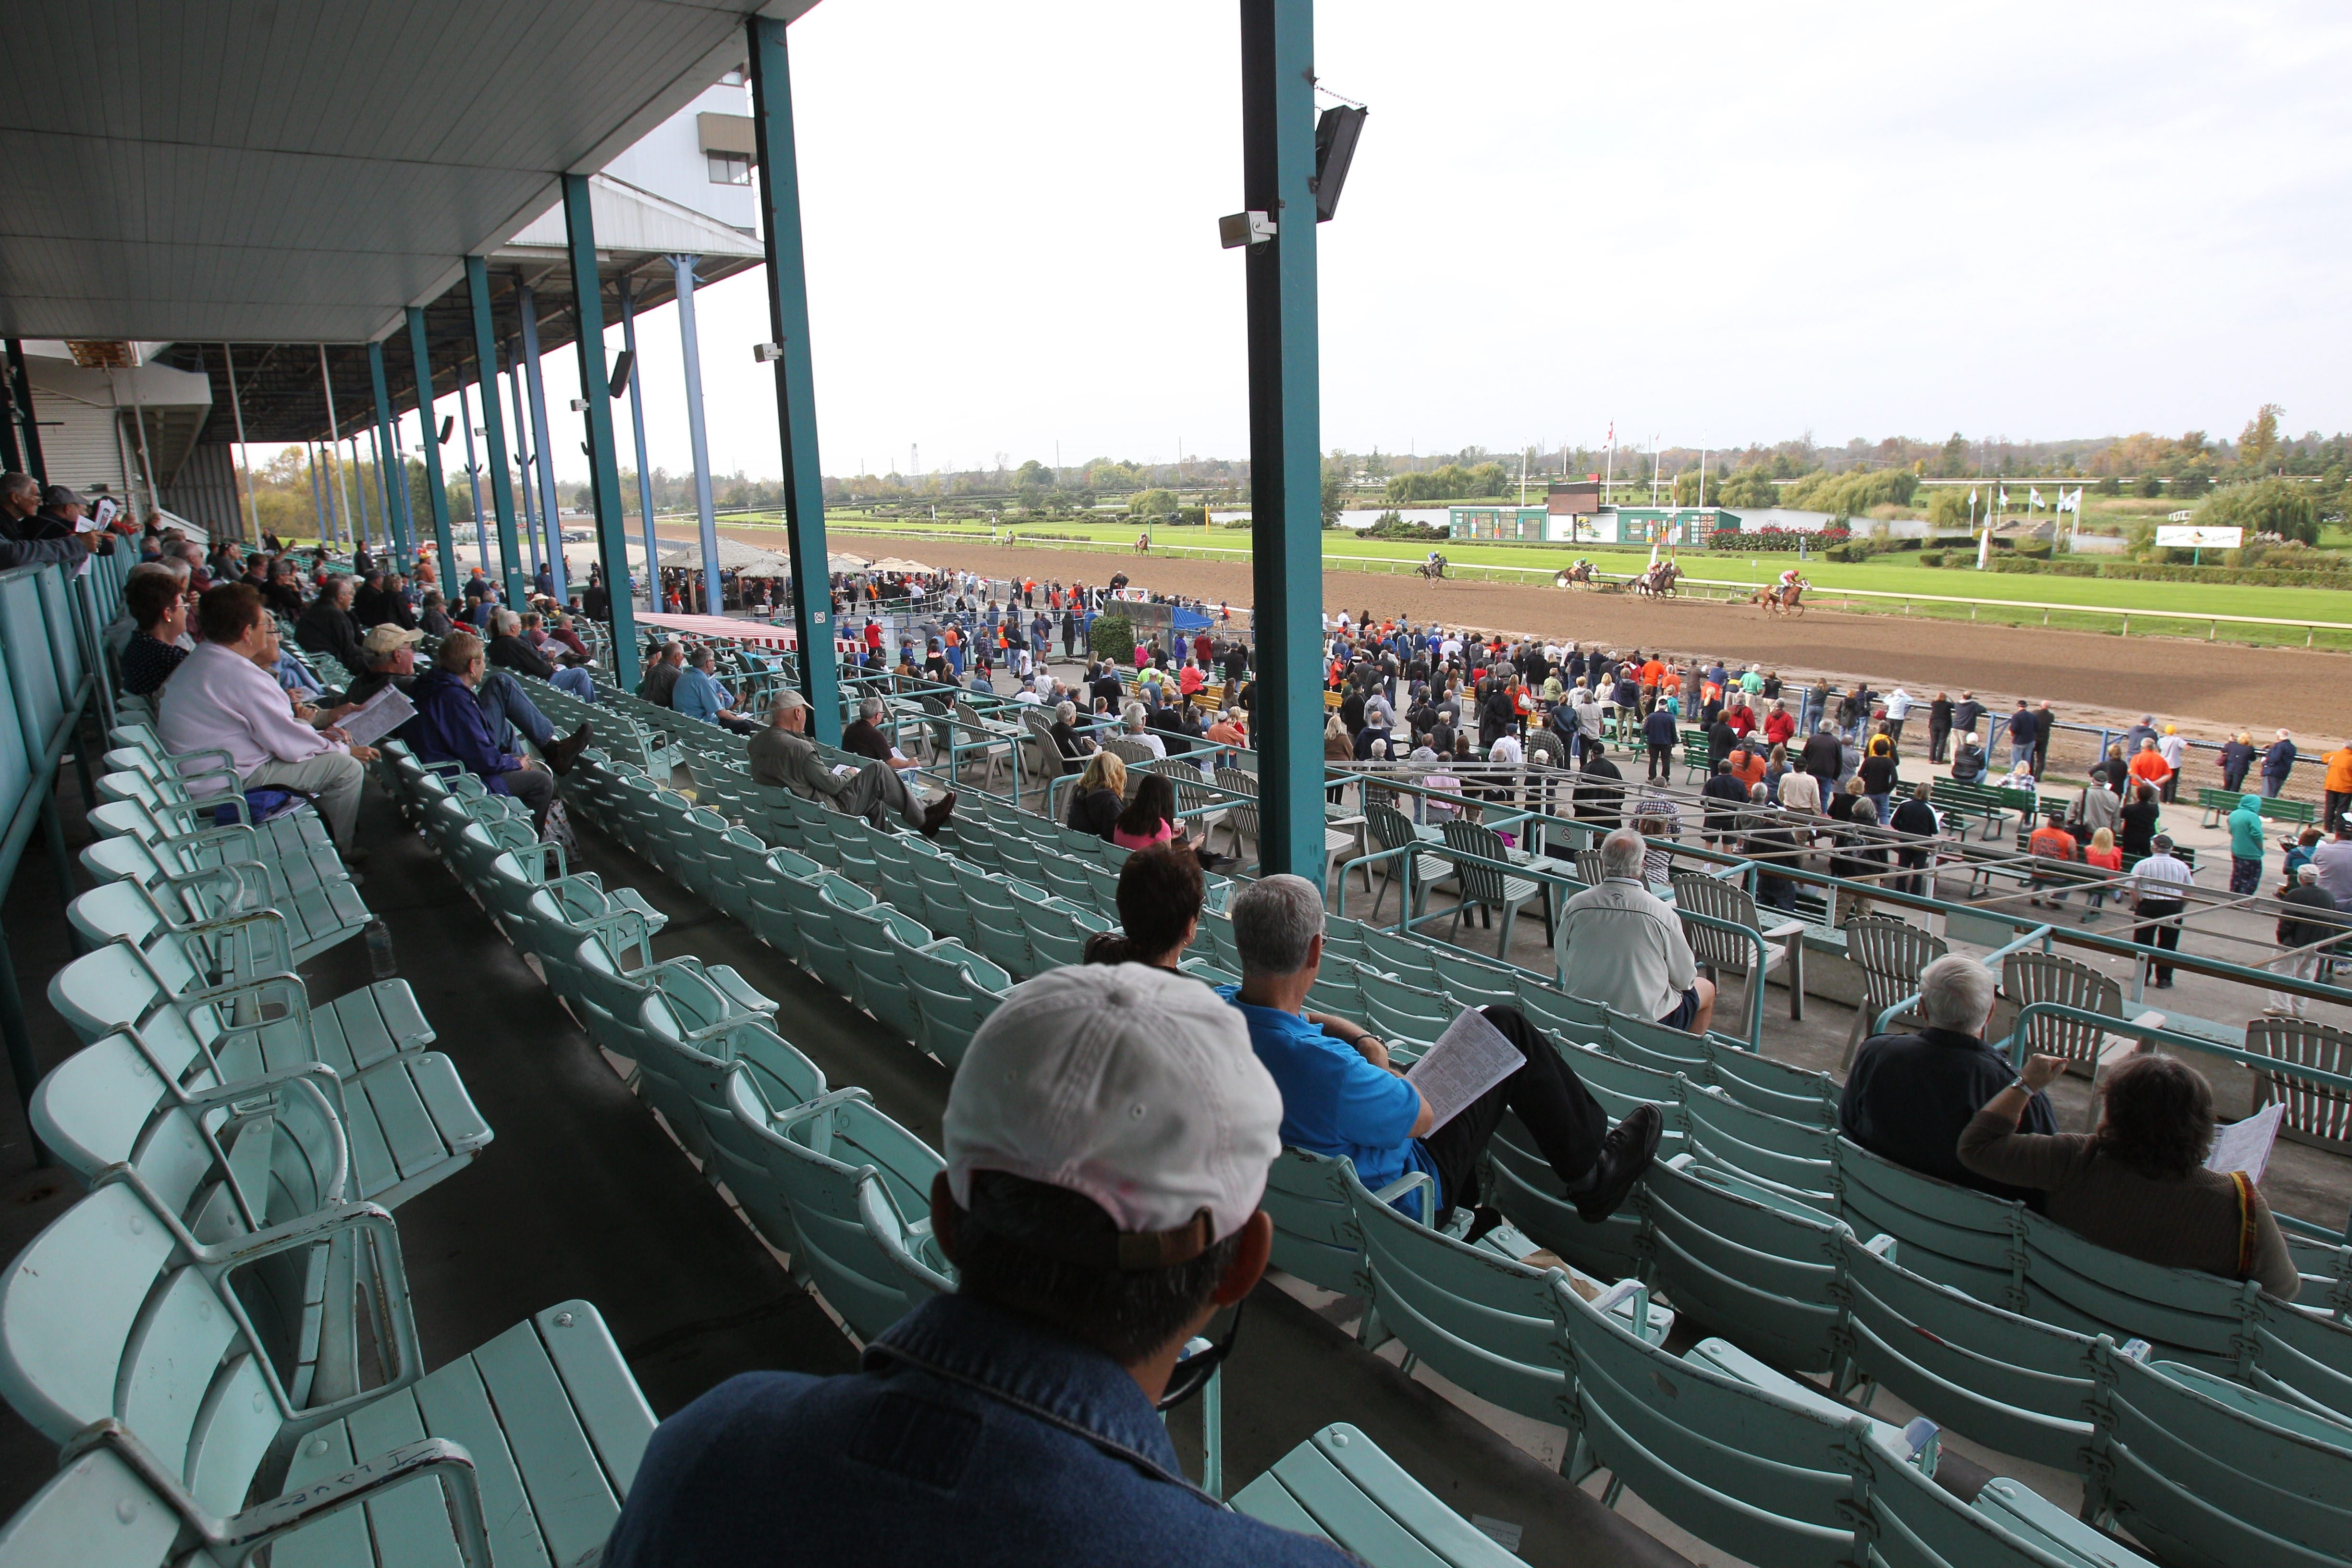 Bettors watch as the horses approach the finish line on Oct. 15, 2013, the last day of the season and, for all the patrons knew at the time, the last day of the race track.